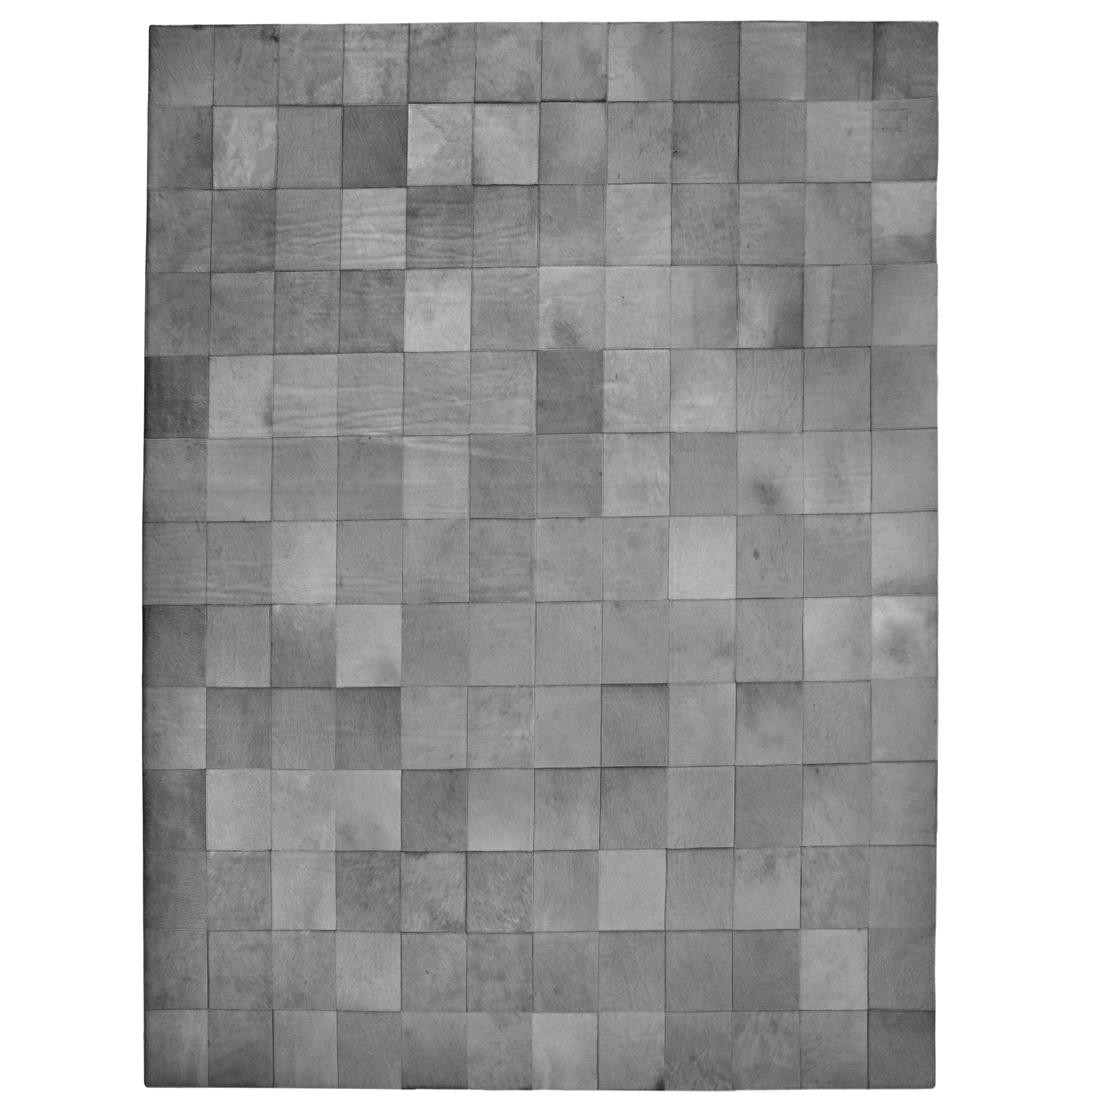 TAPETE COURO NATURAL - 1,50x2,00